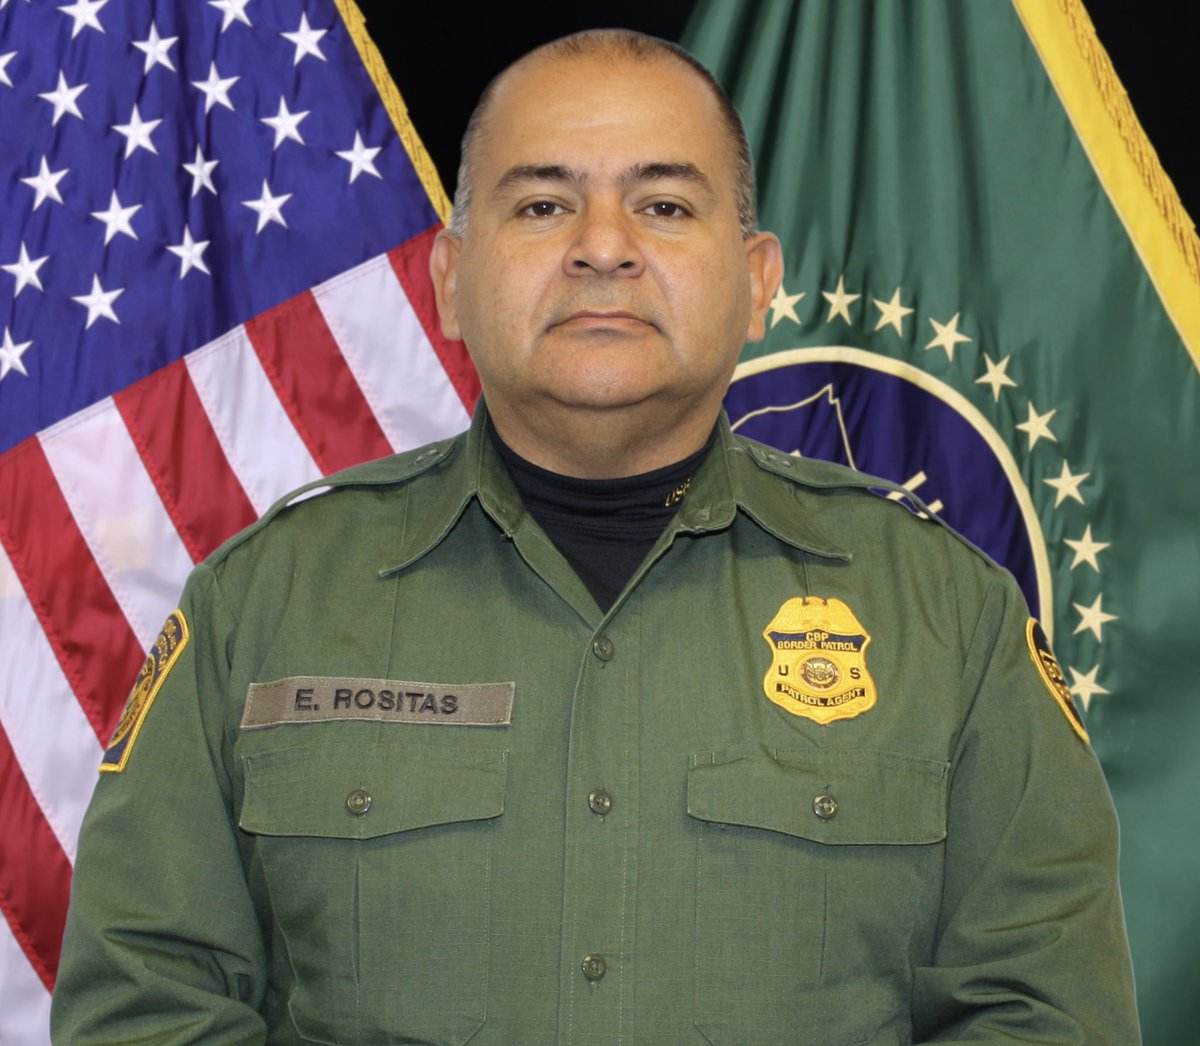 We are saddened to share that Agent Enrique Rositas Jr. died in the line of duty on 7/11 after being hospitalized for COVID-19. He served his country in the US Air Force & US Border Patrol with honor & distinction for 35yrs. Our thoughts & prayers are with his family. https://t.co/l6MMyBUfxt https://t.co/0KSB6jqqXk